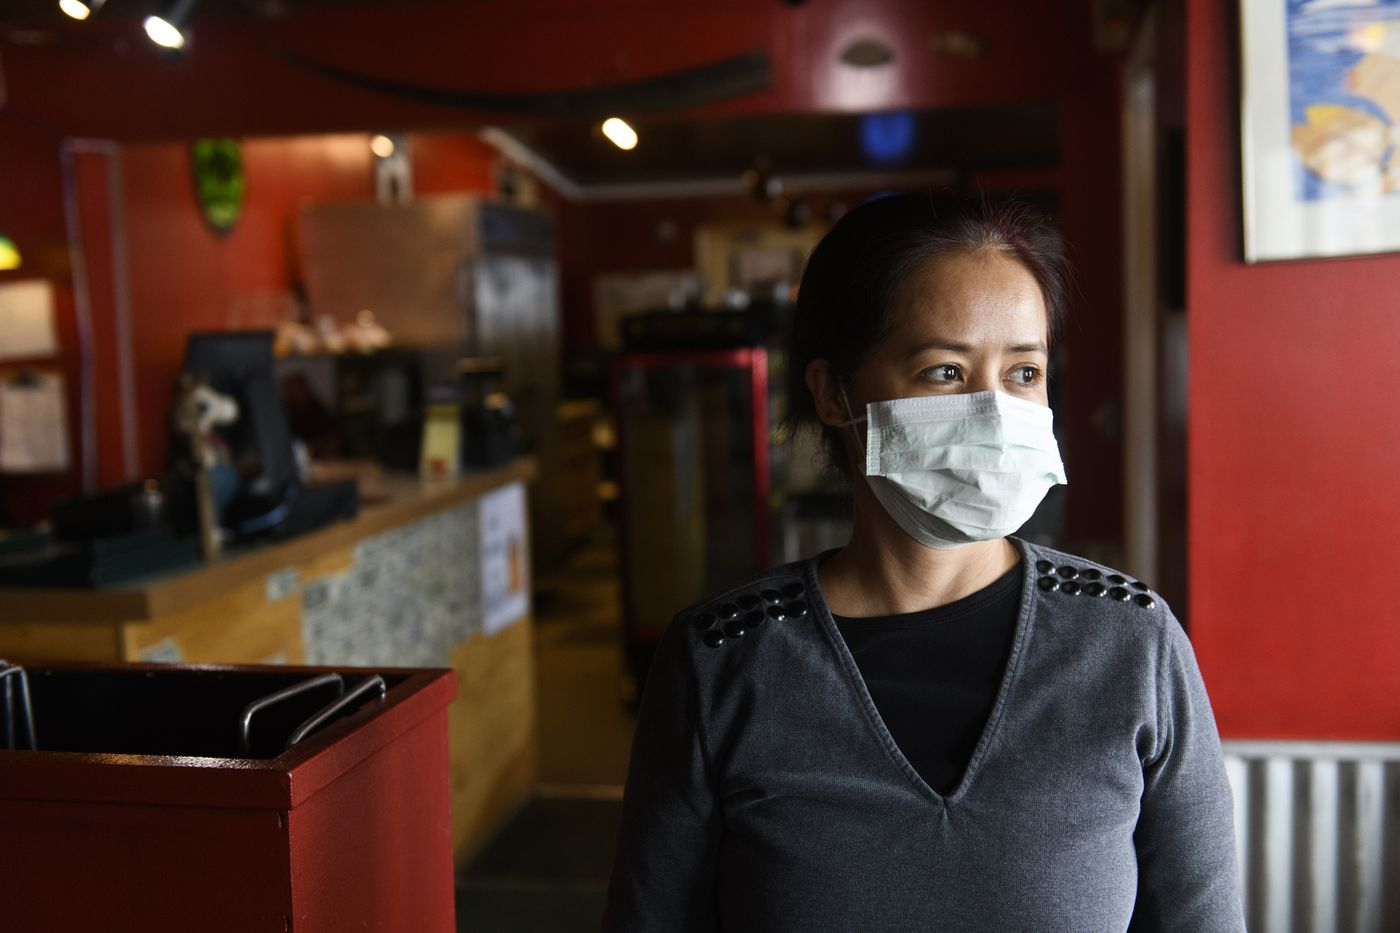 Jelma Chang said she started wearing a mask while working at Airport Pizza, a Nome restaurant, to be cautious about coronavirus on March 16, 2020. (Marc Lester / ADN)